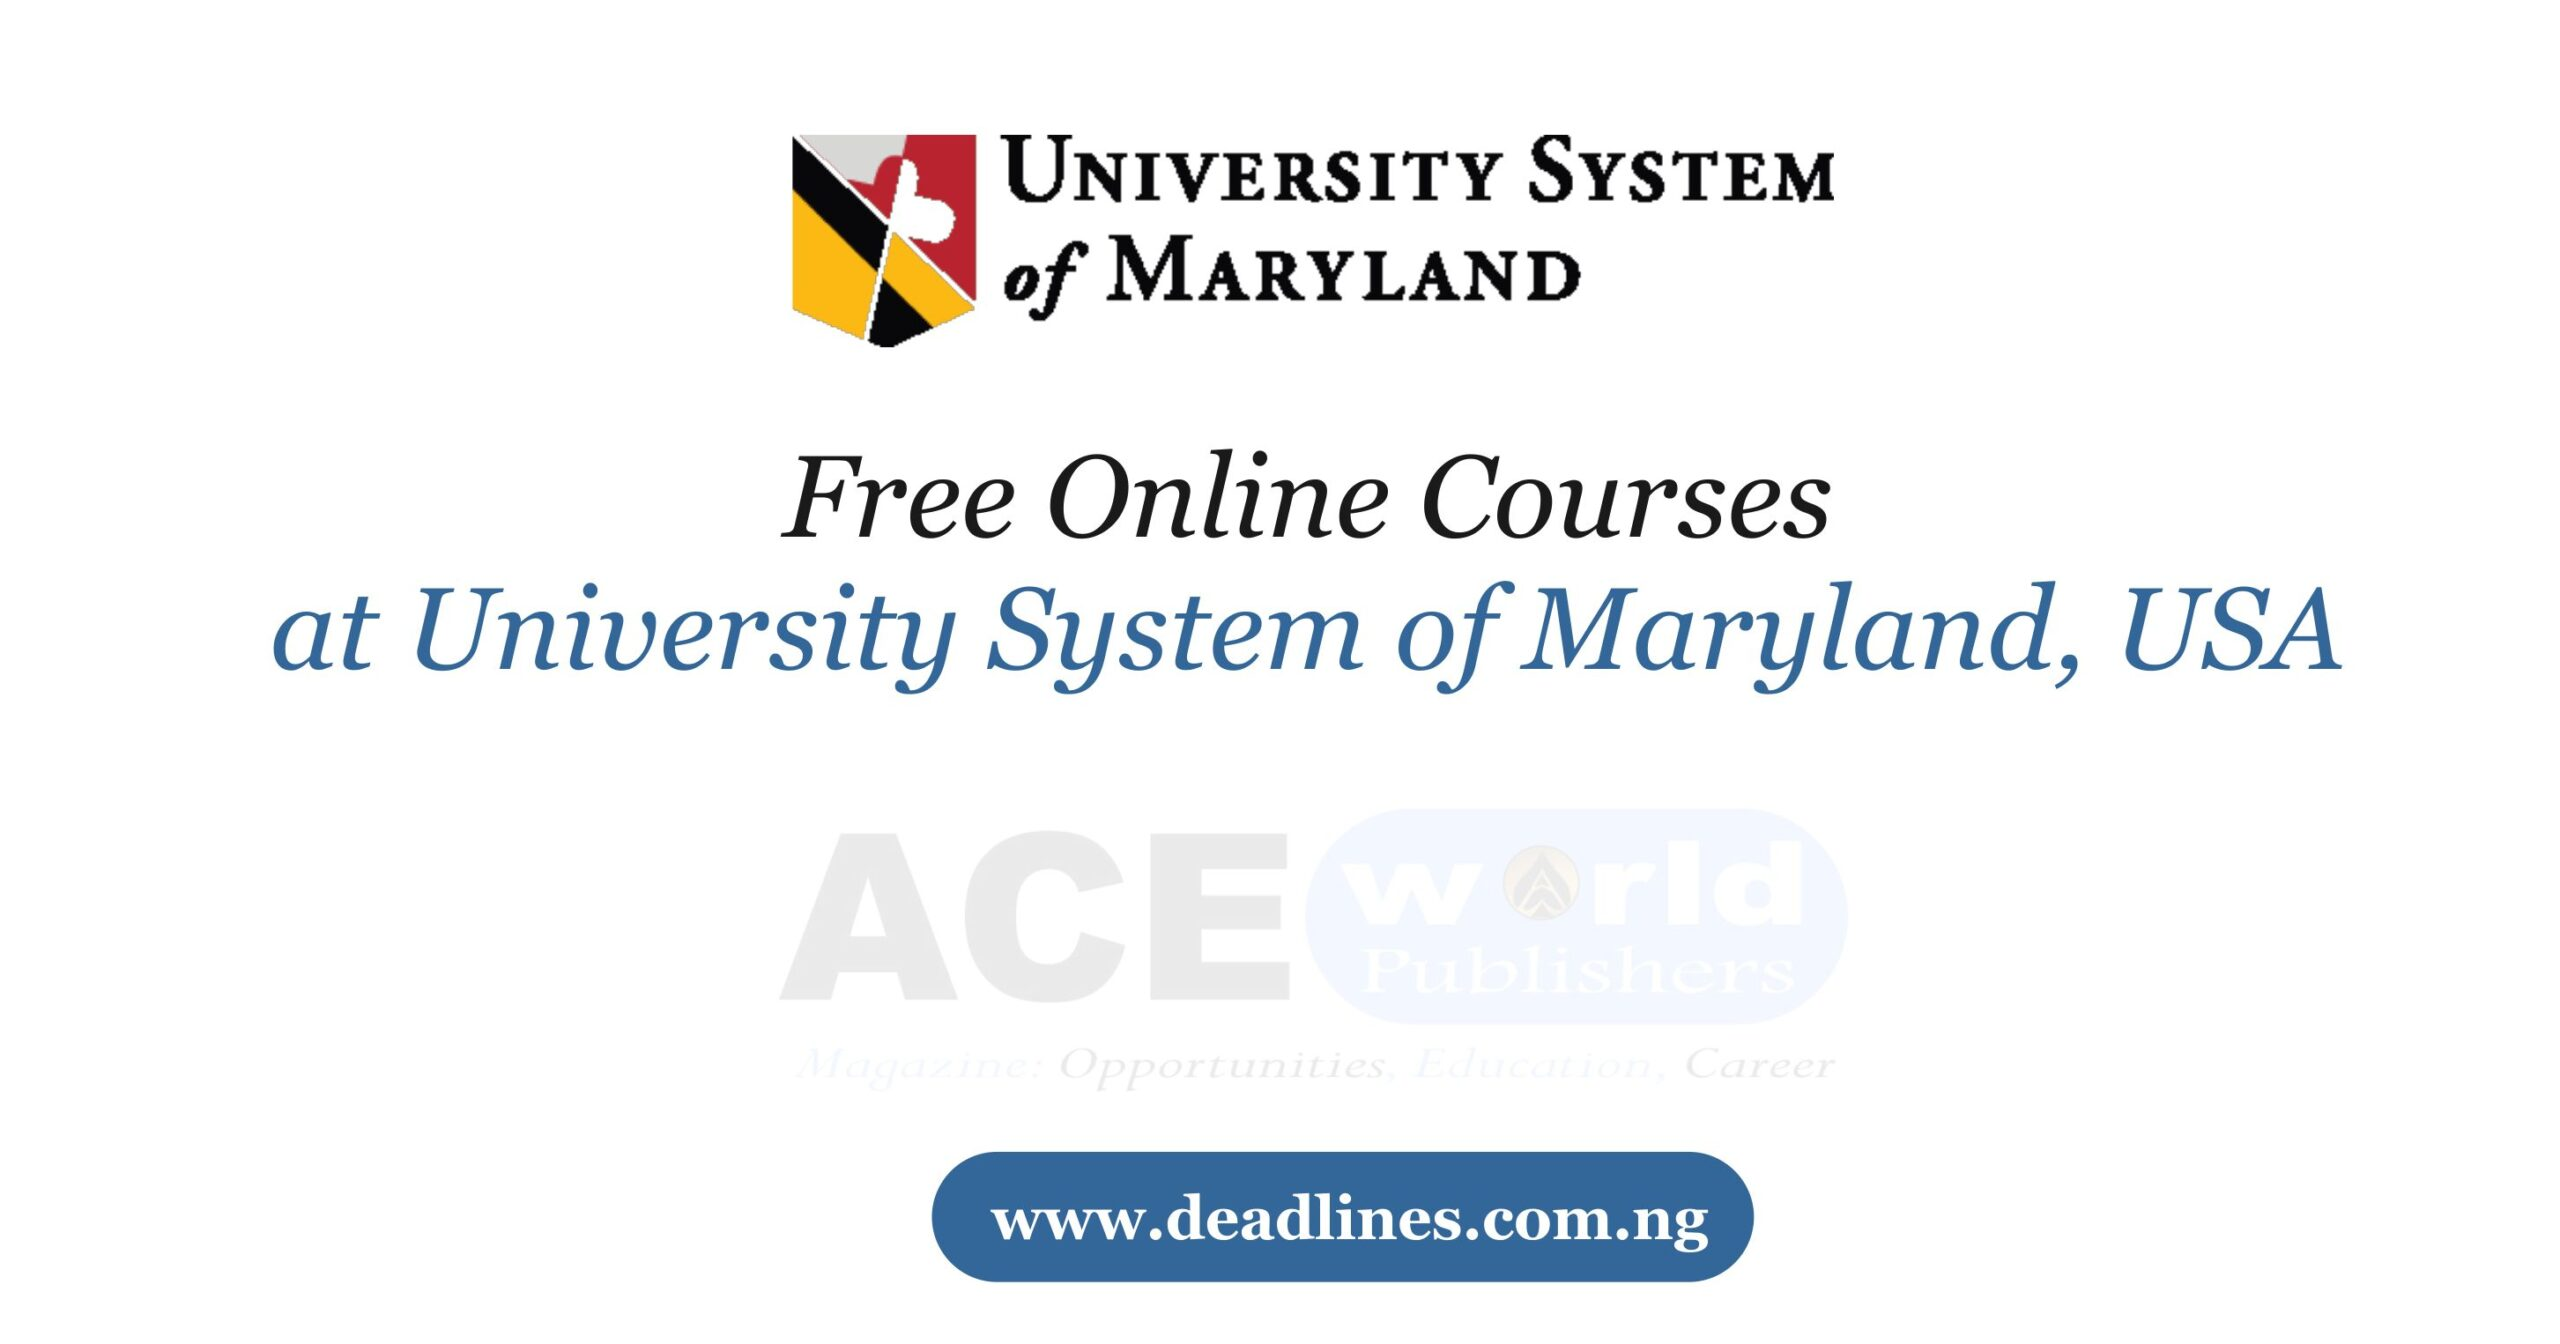 Free Online Courses at University System of Maryland, USA